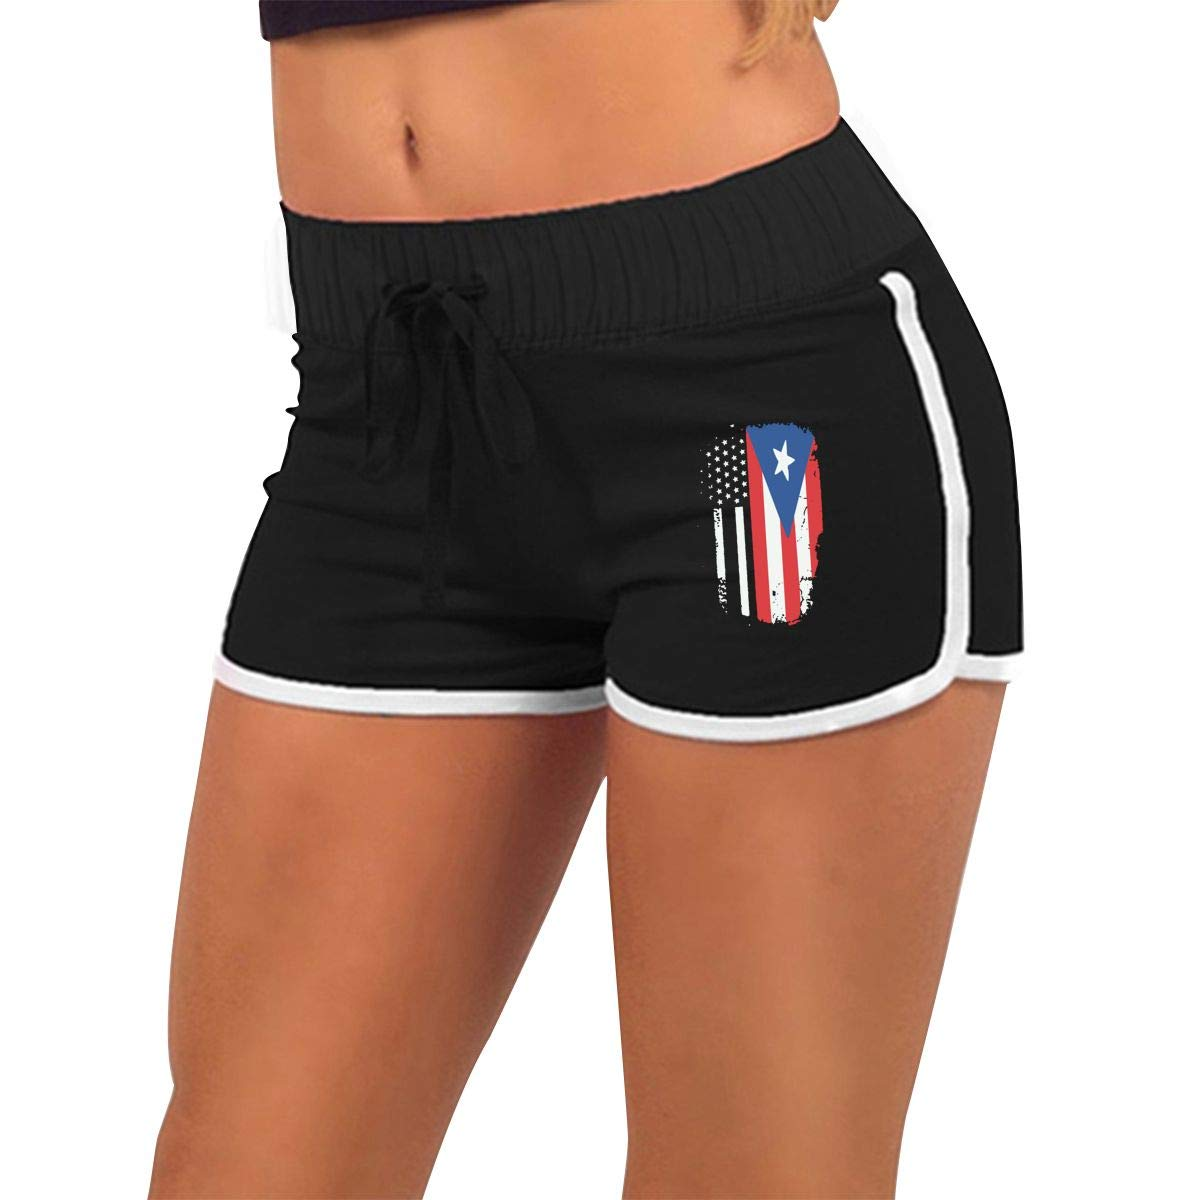 Womens Casual Low Waist Hot Pants American Puerto Rico Flag Gym Hot Pants